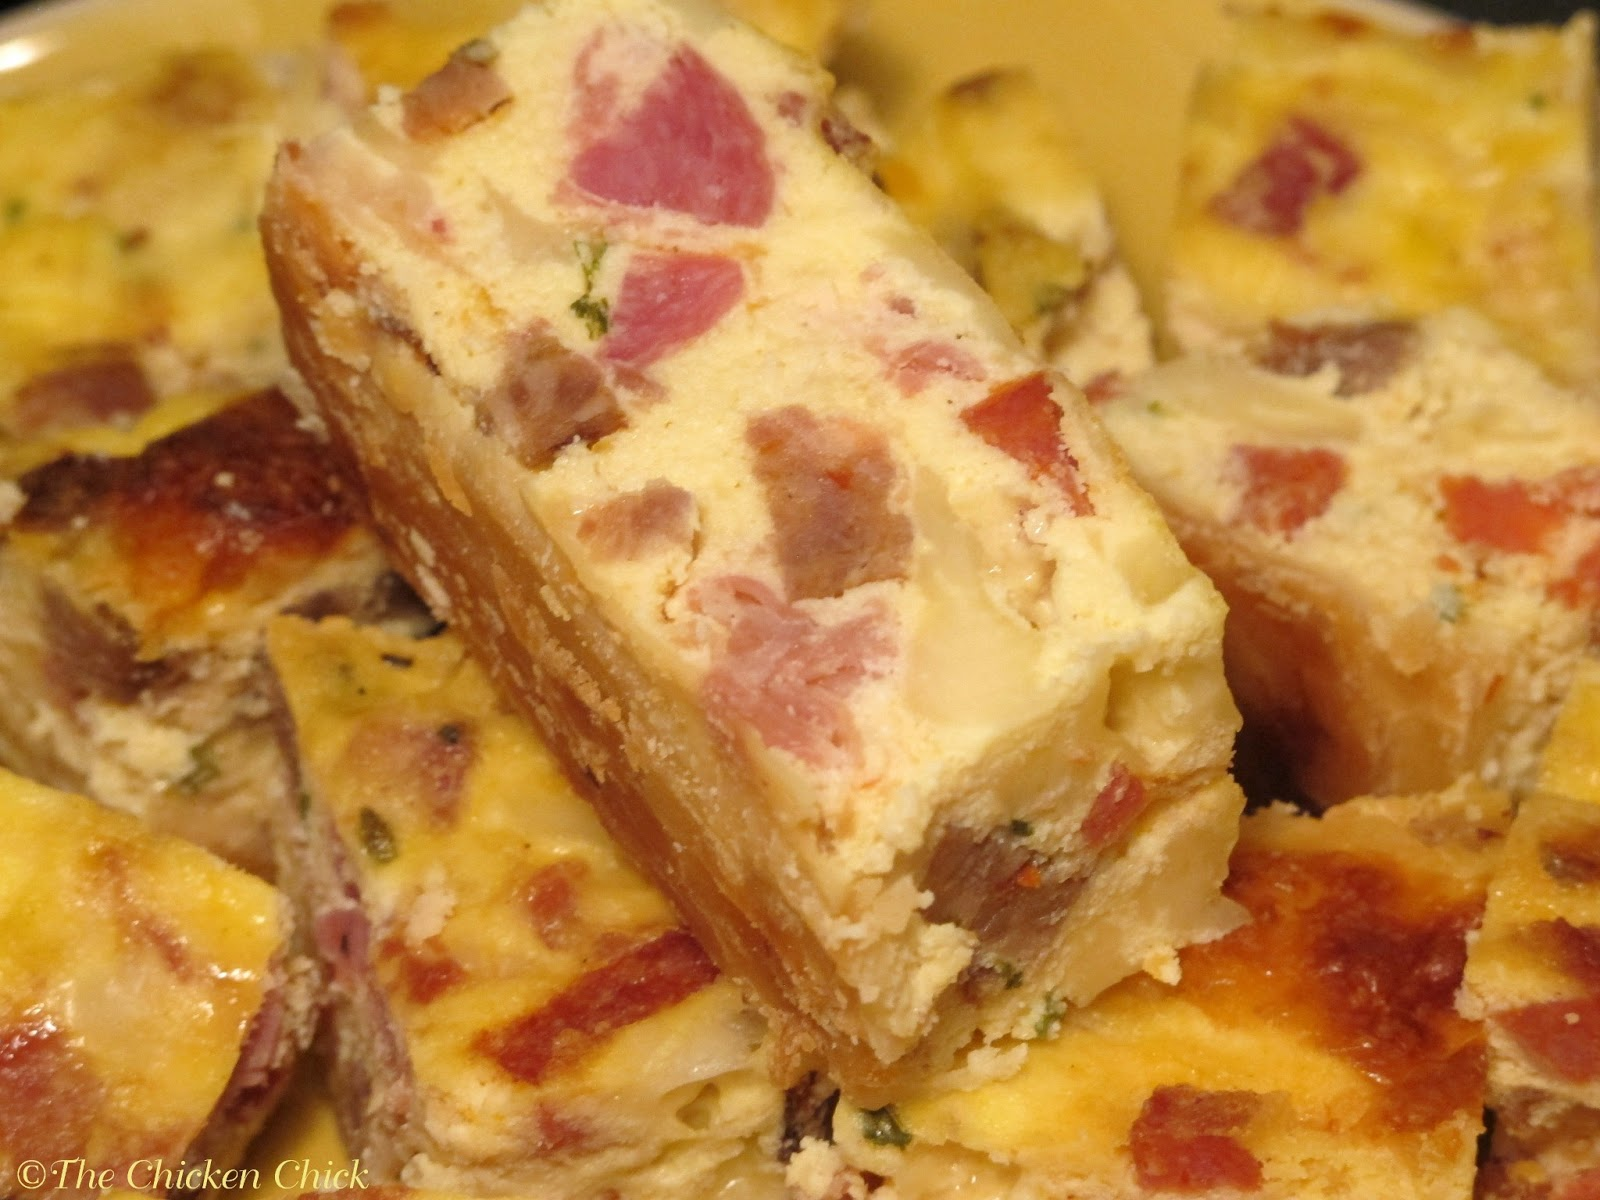 ... Chicken Chick®: Clever Chicks Blog Hop #27 with Pizza Rustica Recipe